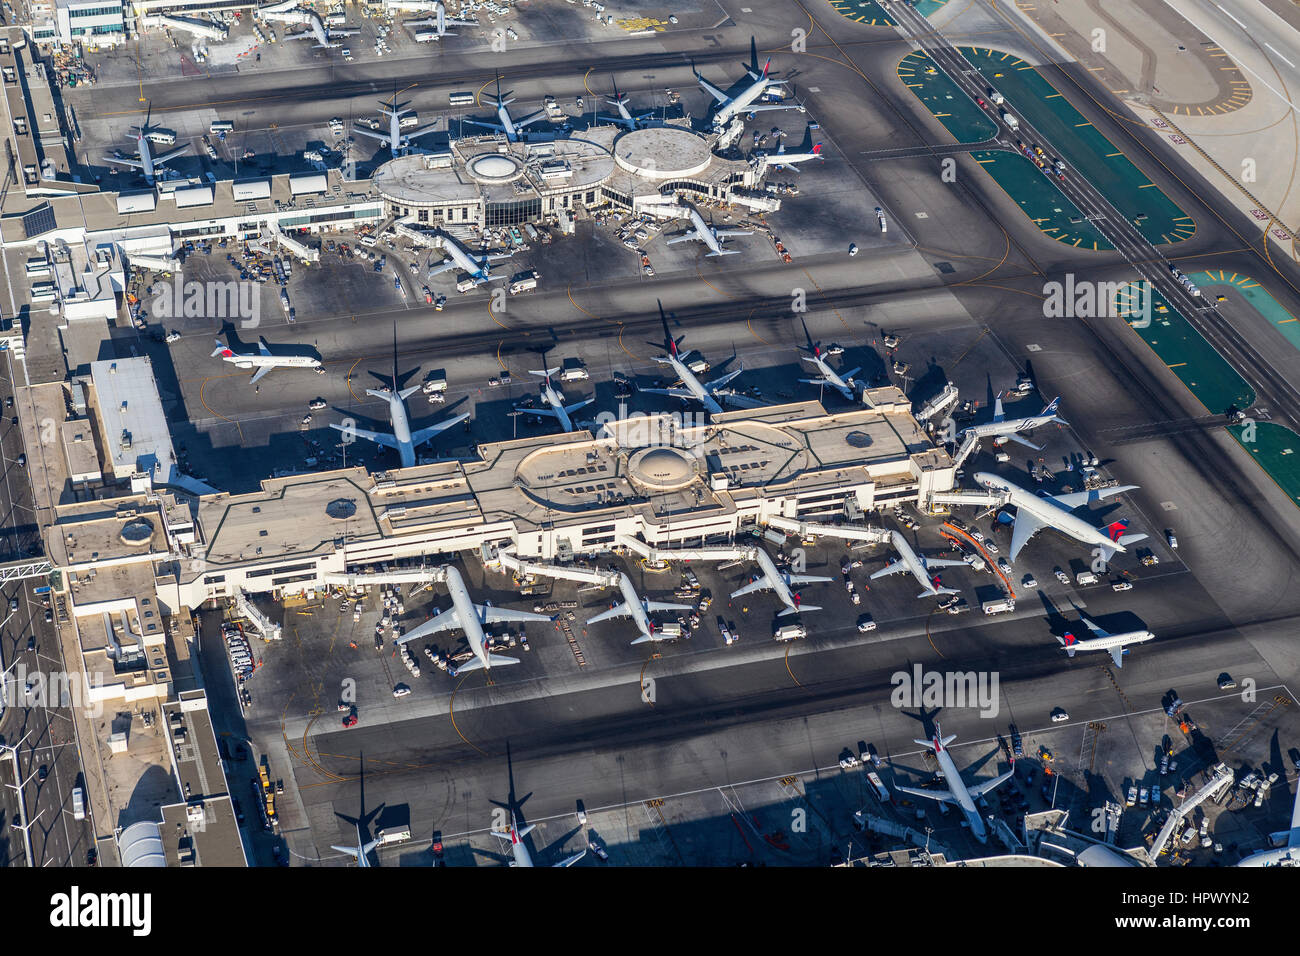 Los Angeles, California, USA - August 16, 2016:  Aerial view of Delta Airlines terminals at LAX. - Stock Image